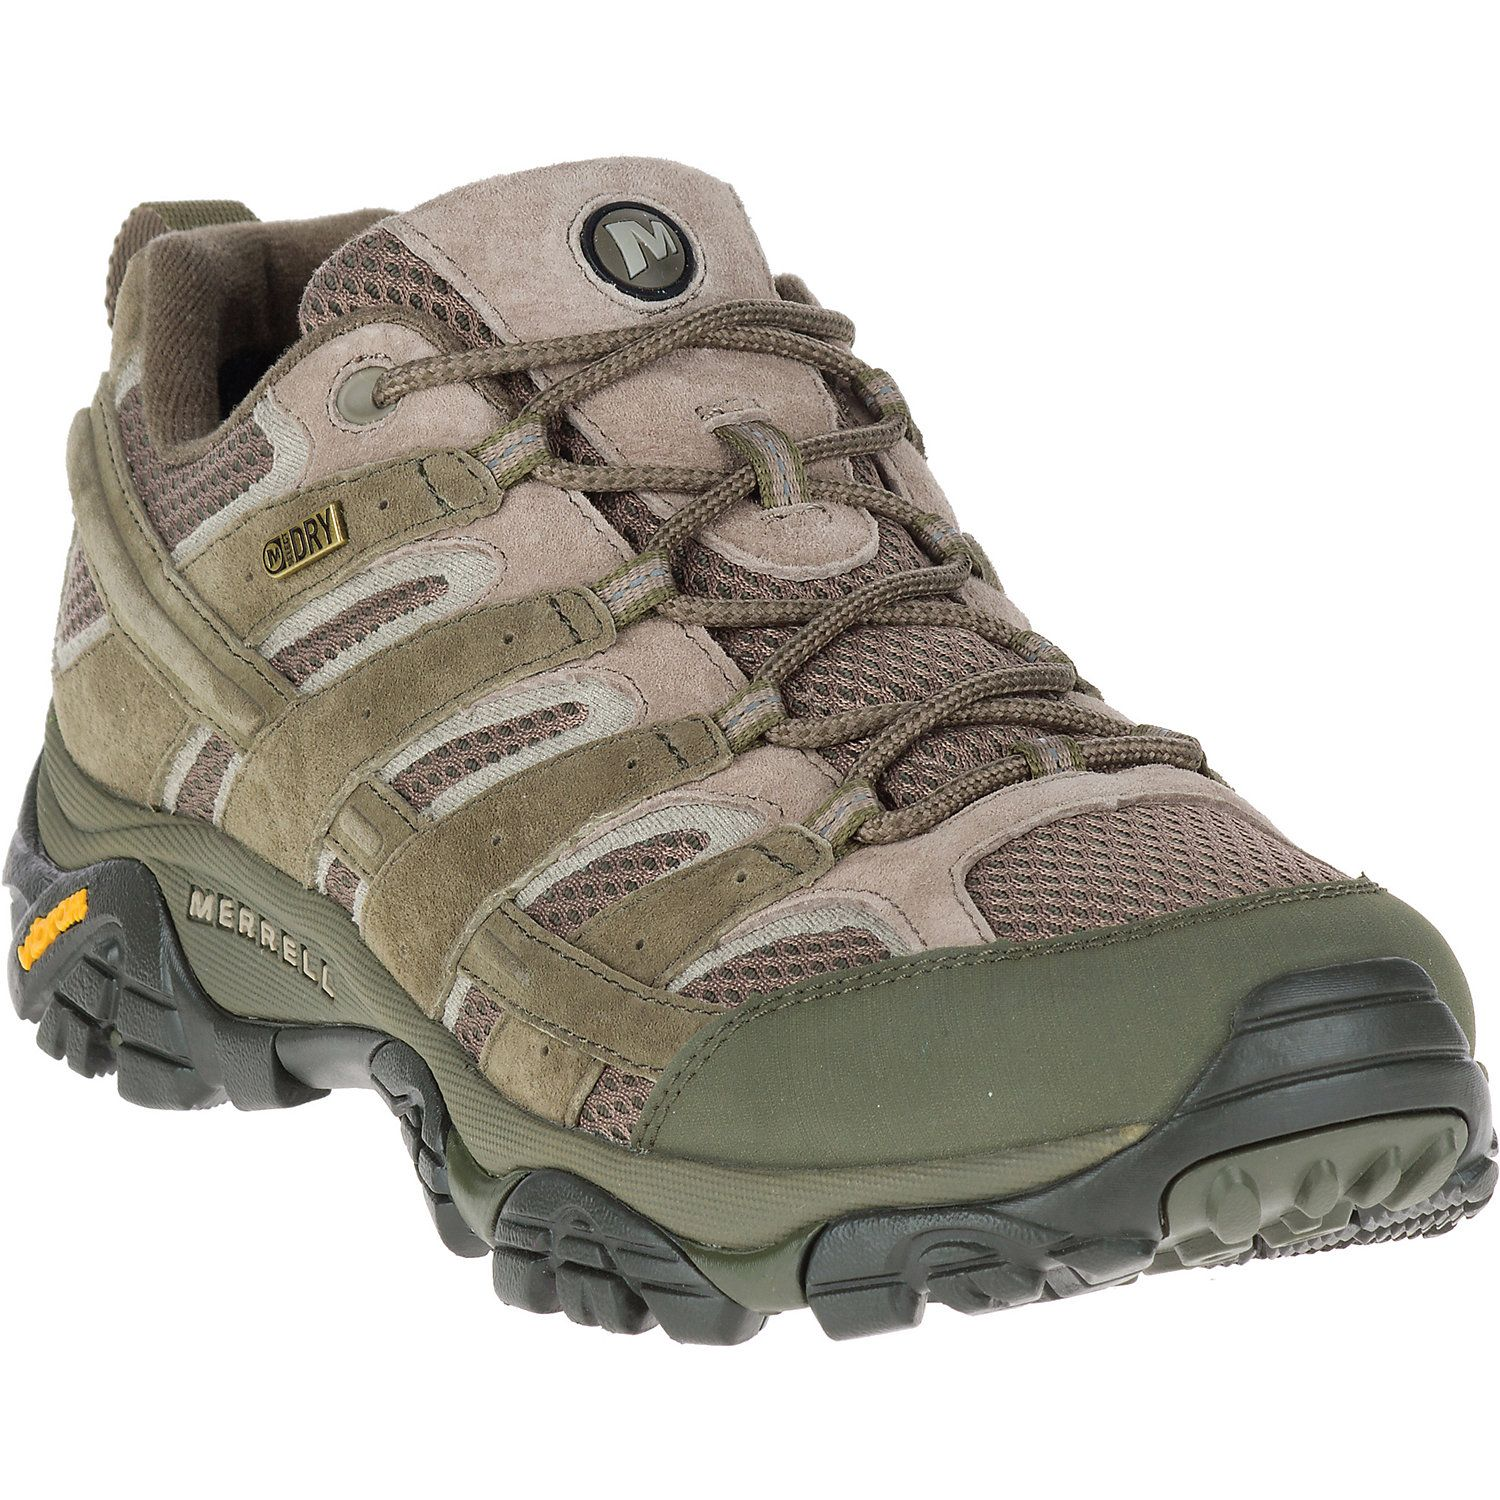 cb10b8df5f0 Merrell Men's MOAB 2 Waterproof Shoe | Clothes | Waterproof boots ...